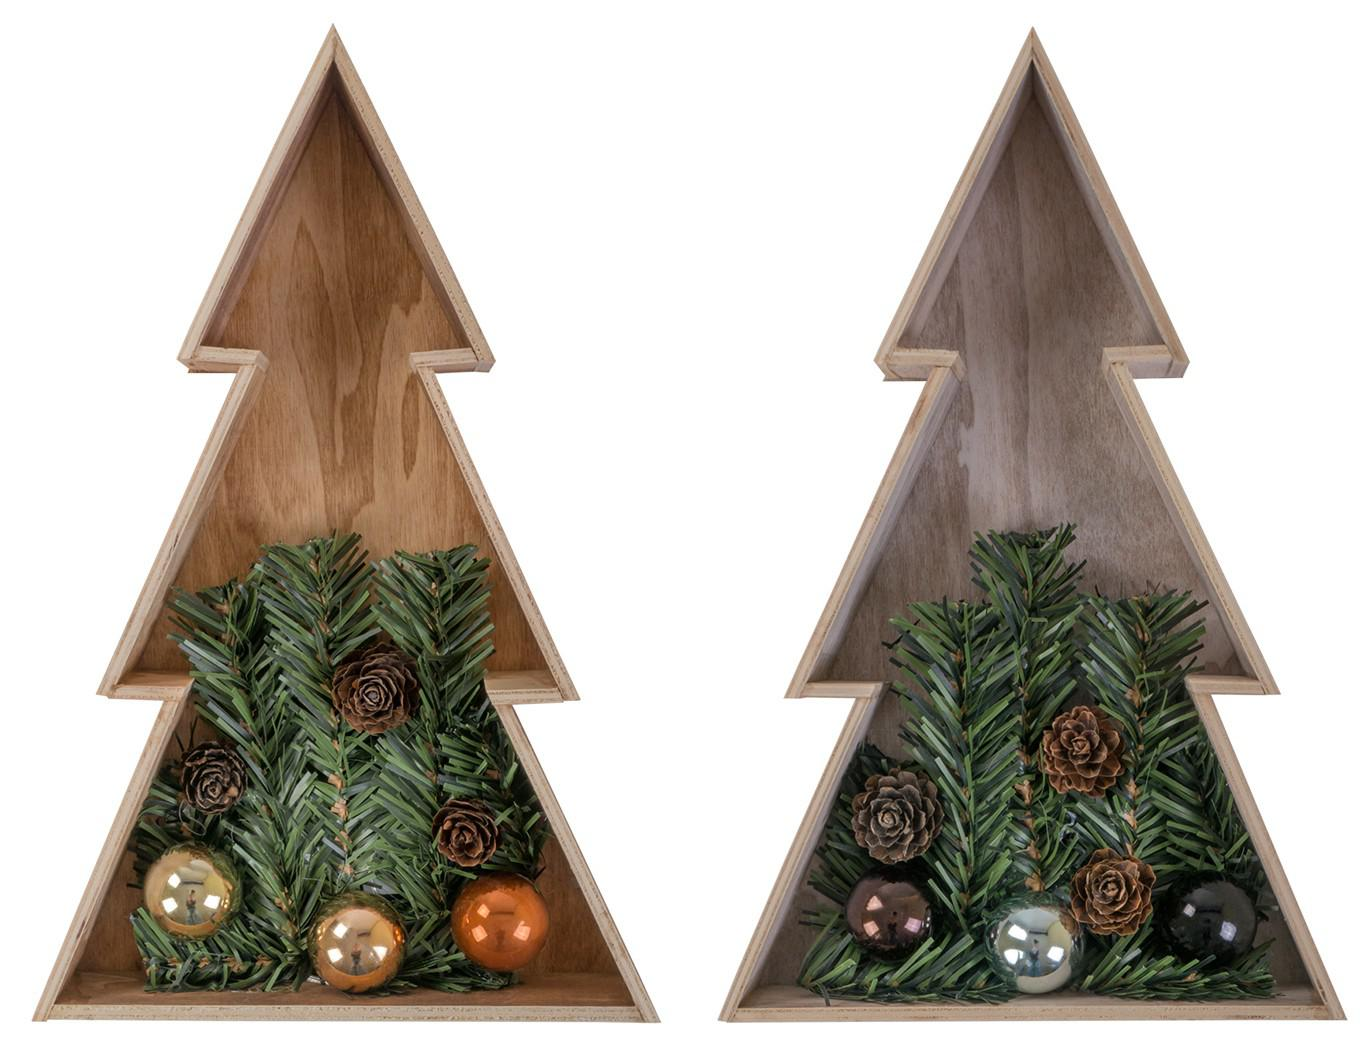 3d holz weihnachtsbaum 28 cm holztanne weihnachten leuchtbaum tischdeko echtholz kaufen bei. Black Bedroom Furniture Sets. Home Design Ideas